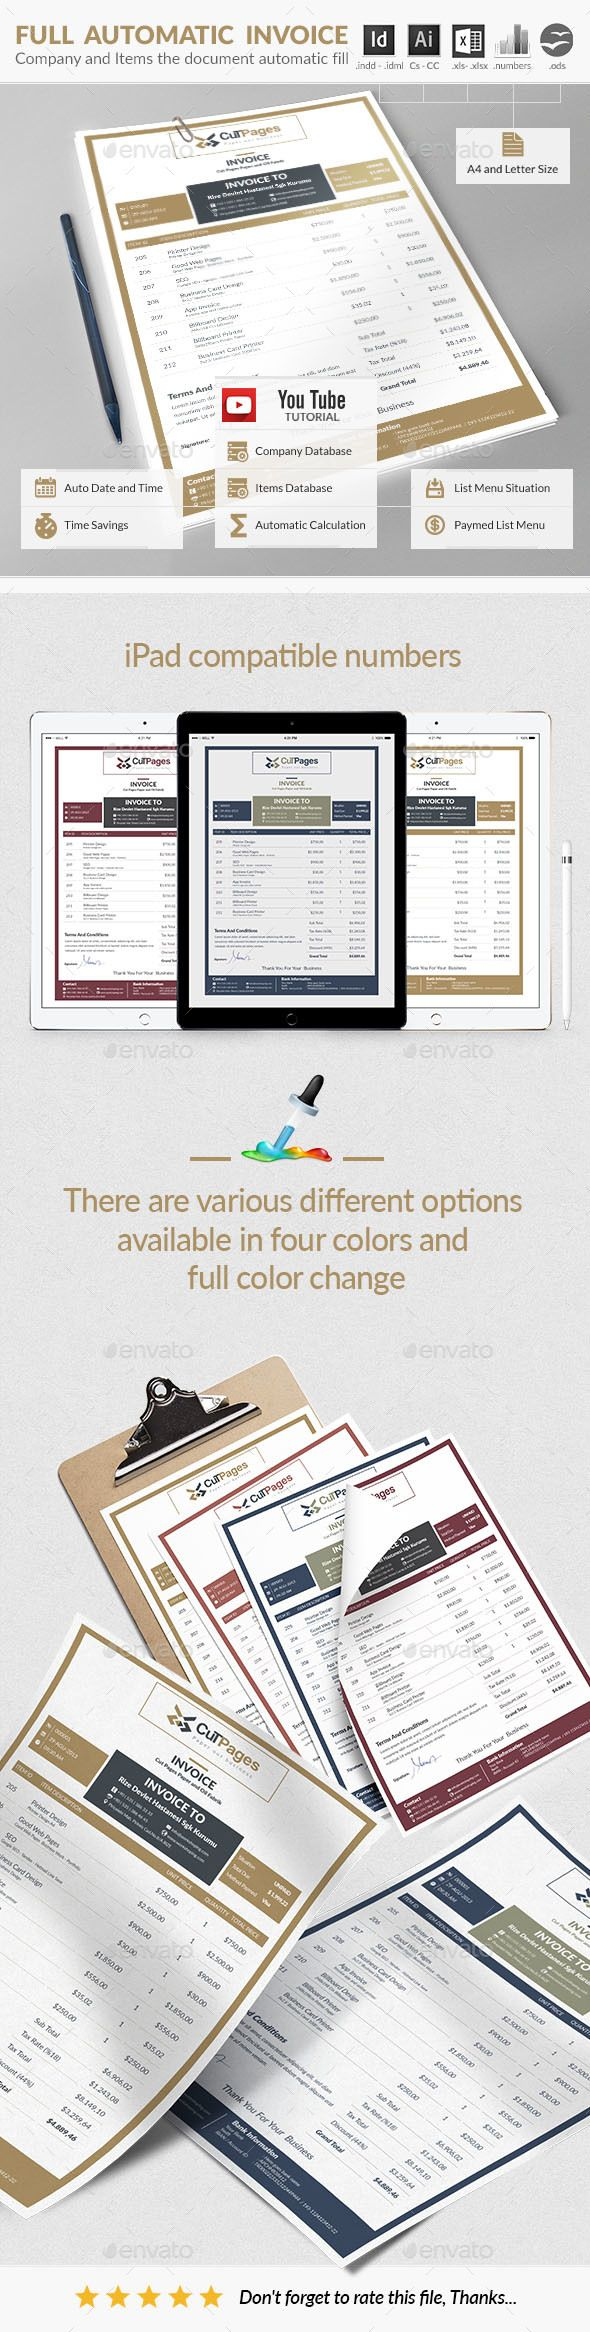 Invoice 9 best questionare design images on